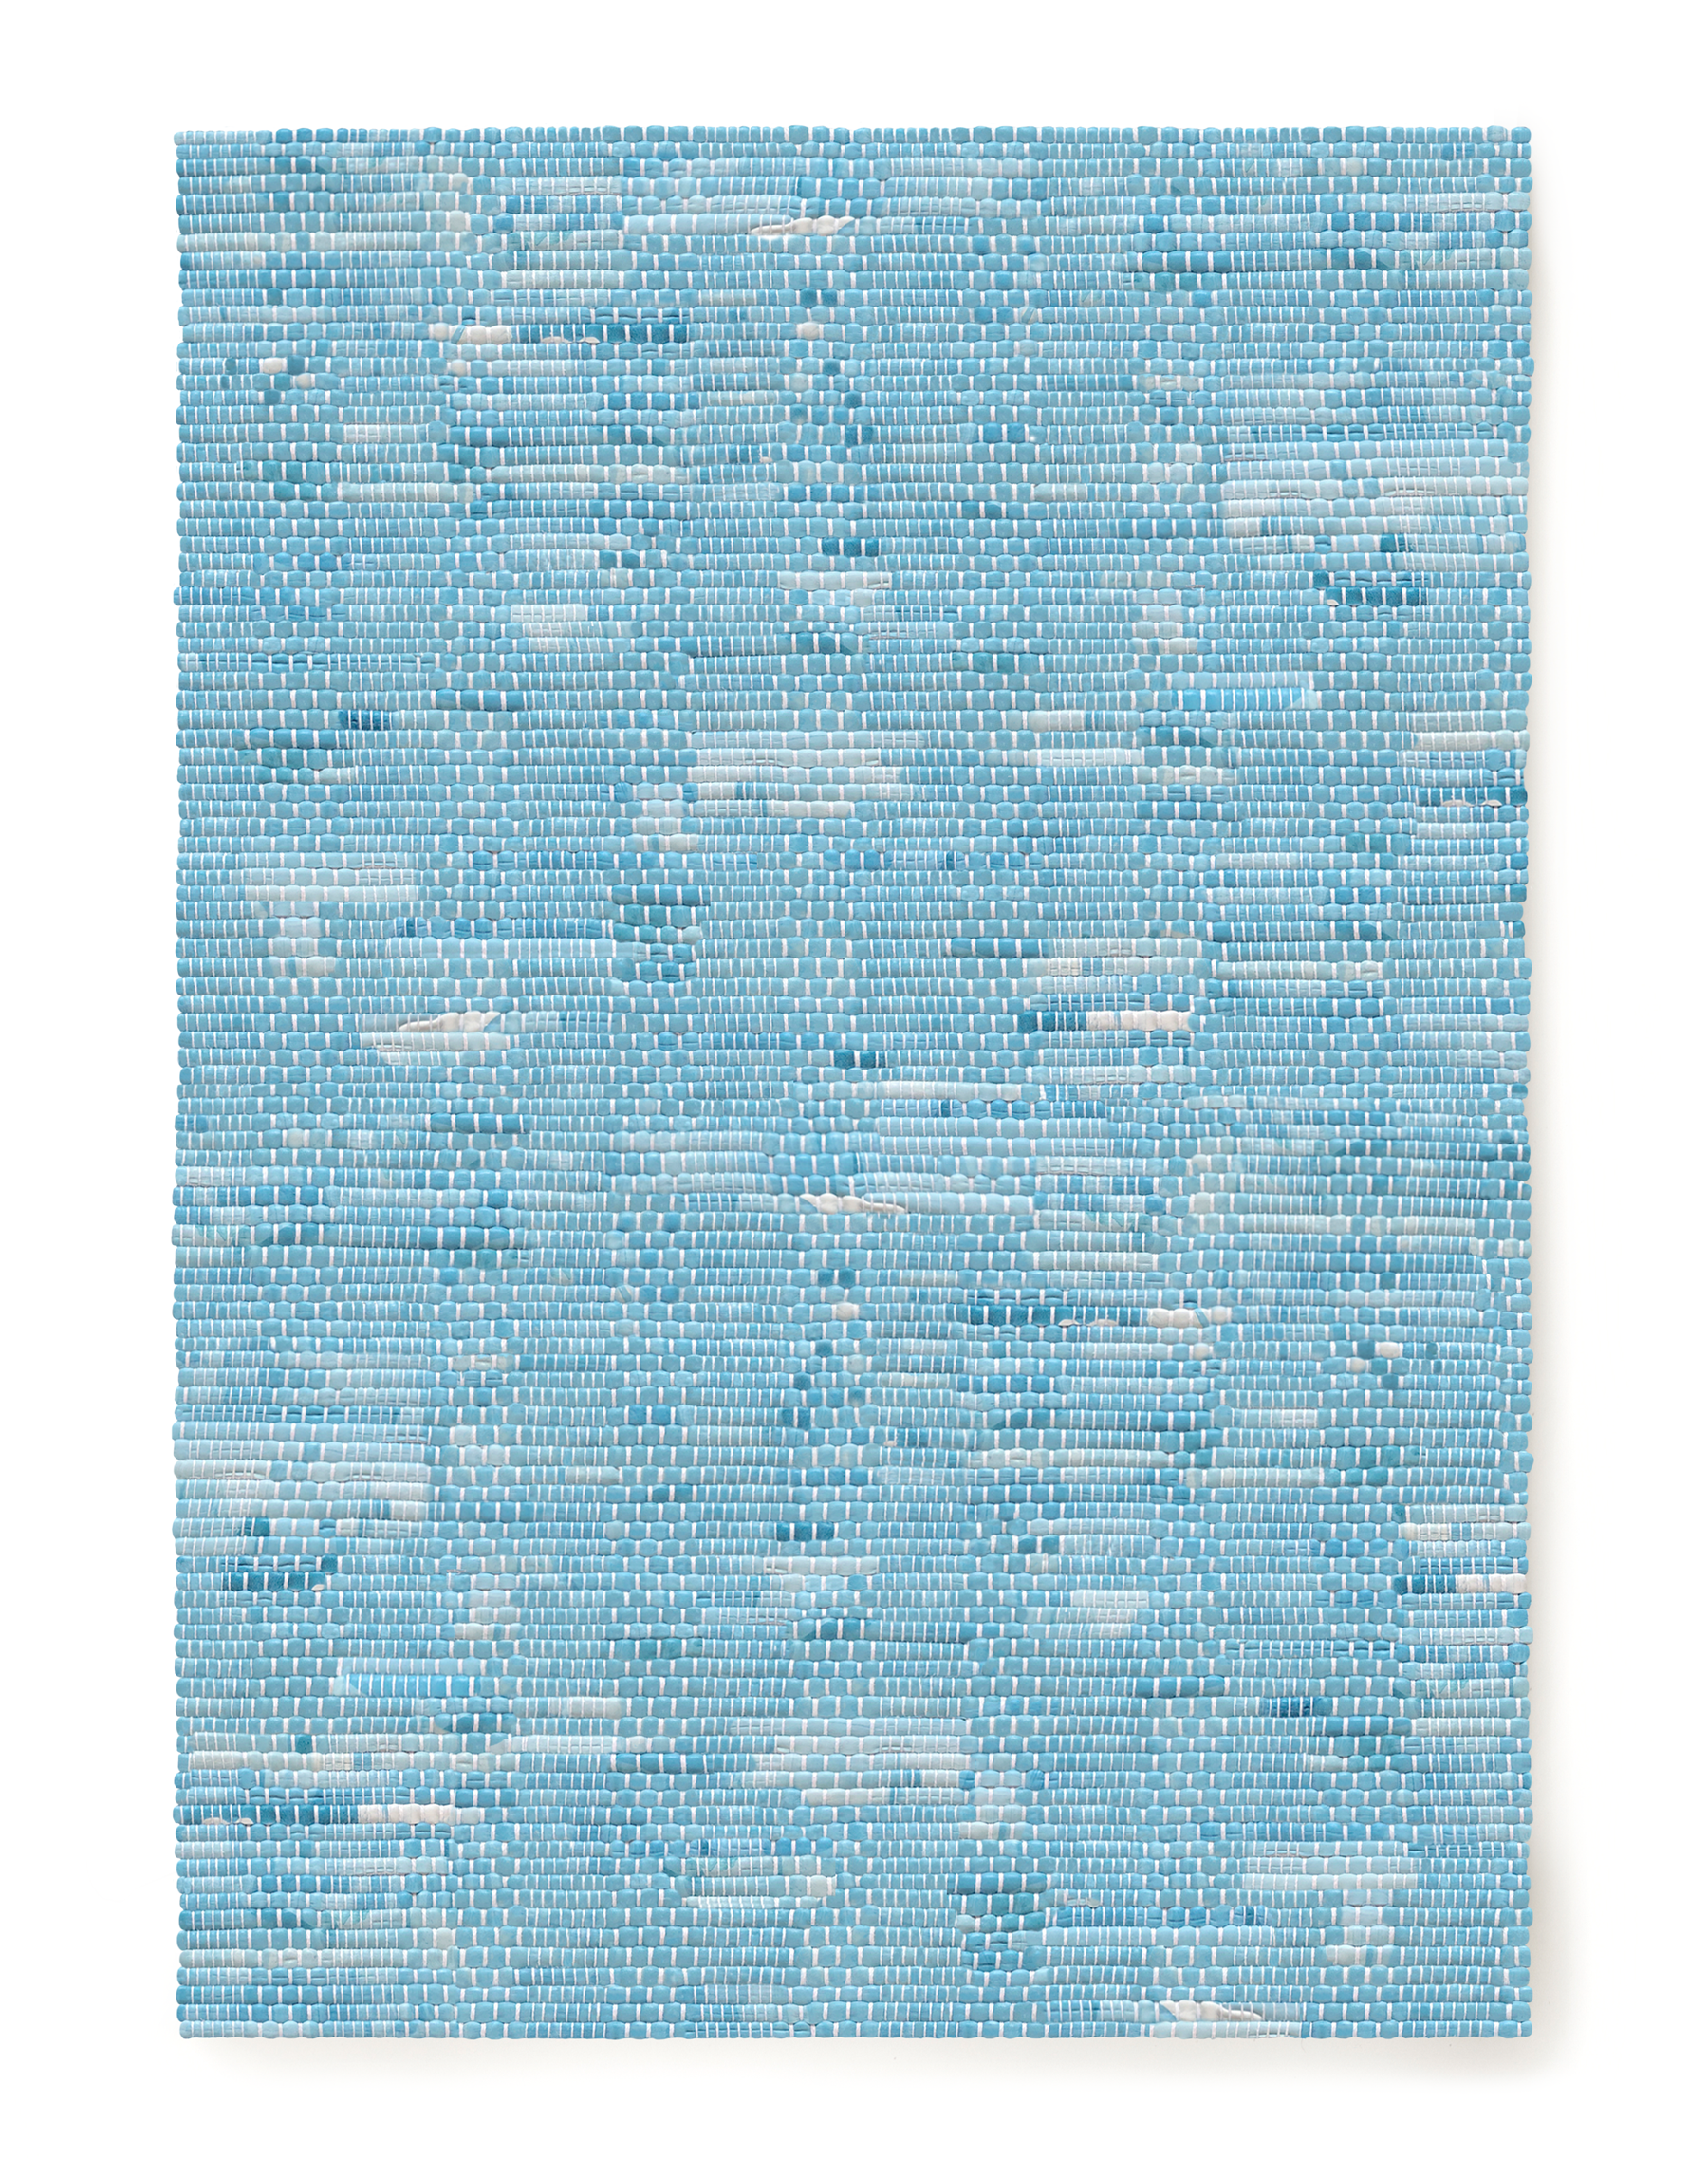 AVO_Woven-Leather-Rug_Selvage-Edge_Current.png